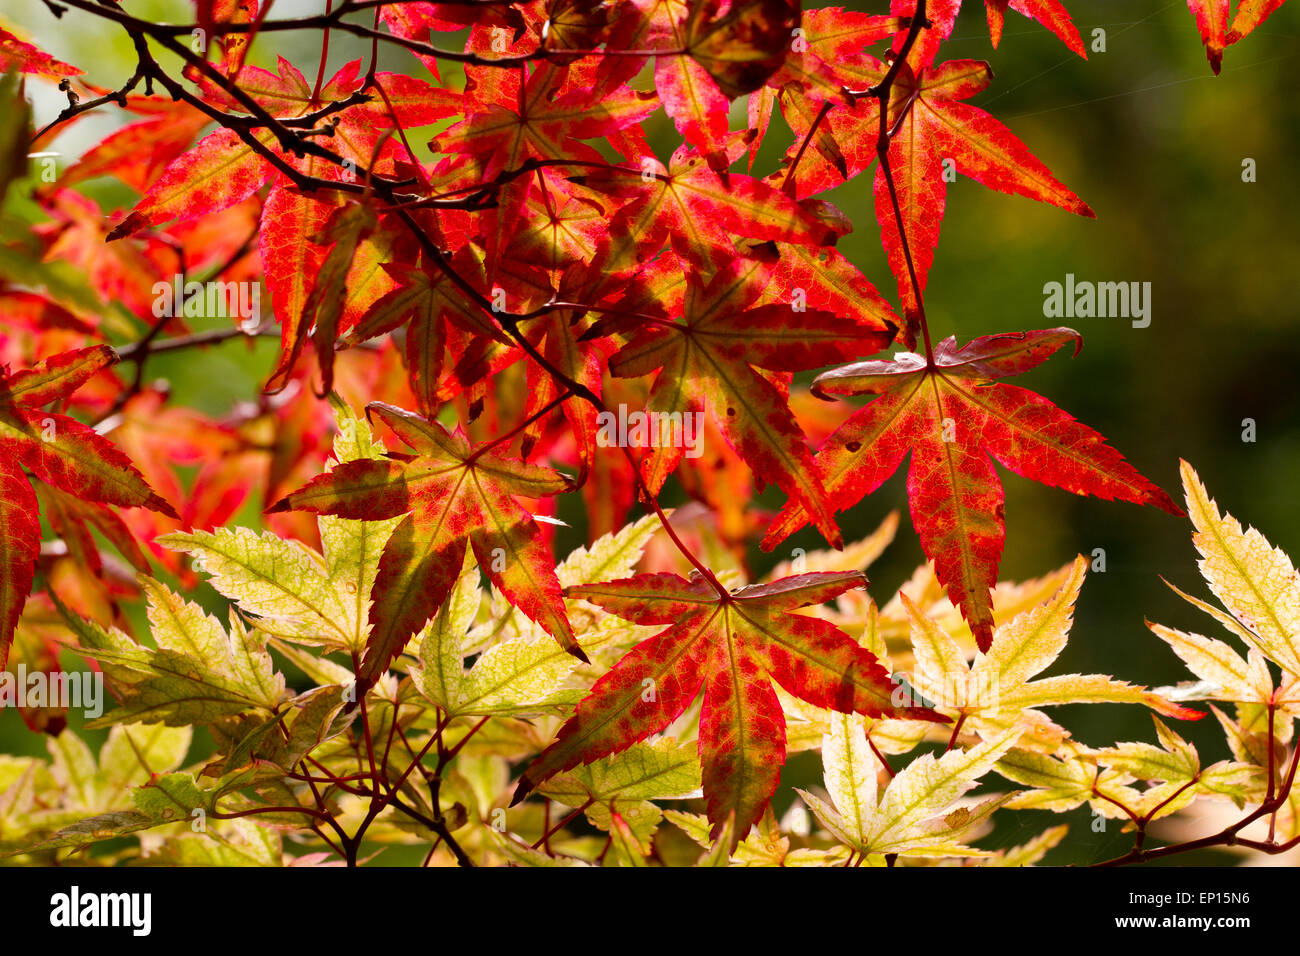 Acer Palmatum Stock Photos Acer Palmatum Stock Images Alamy